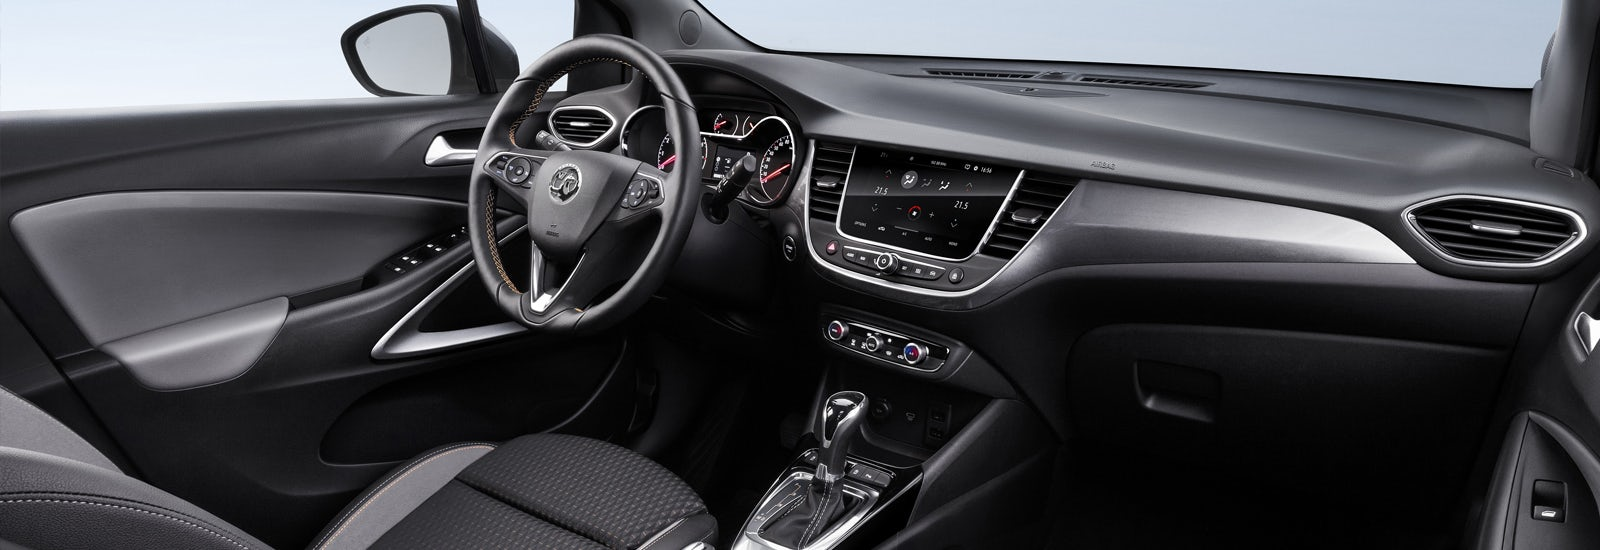 2018 Vauxhall Corsa price specs and release date | carwow